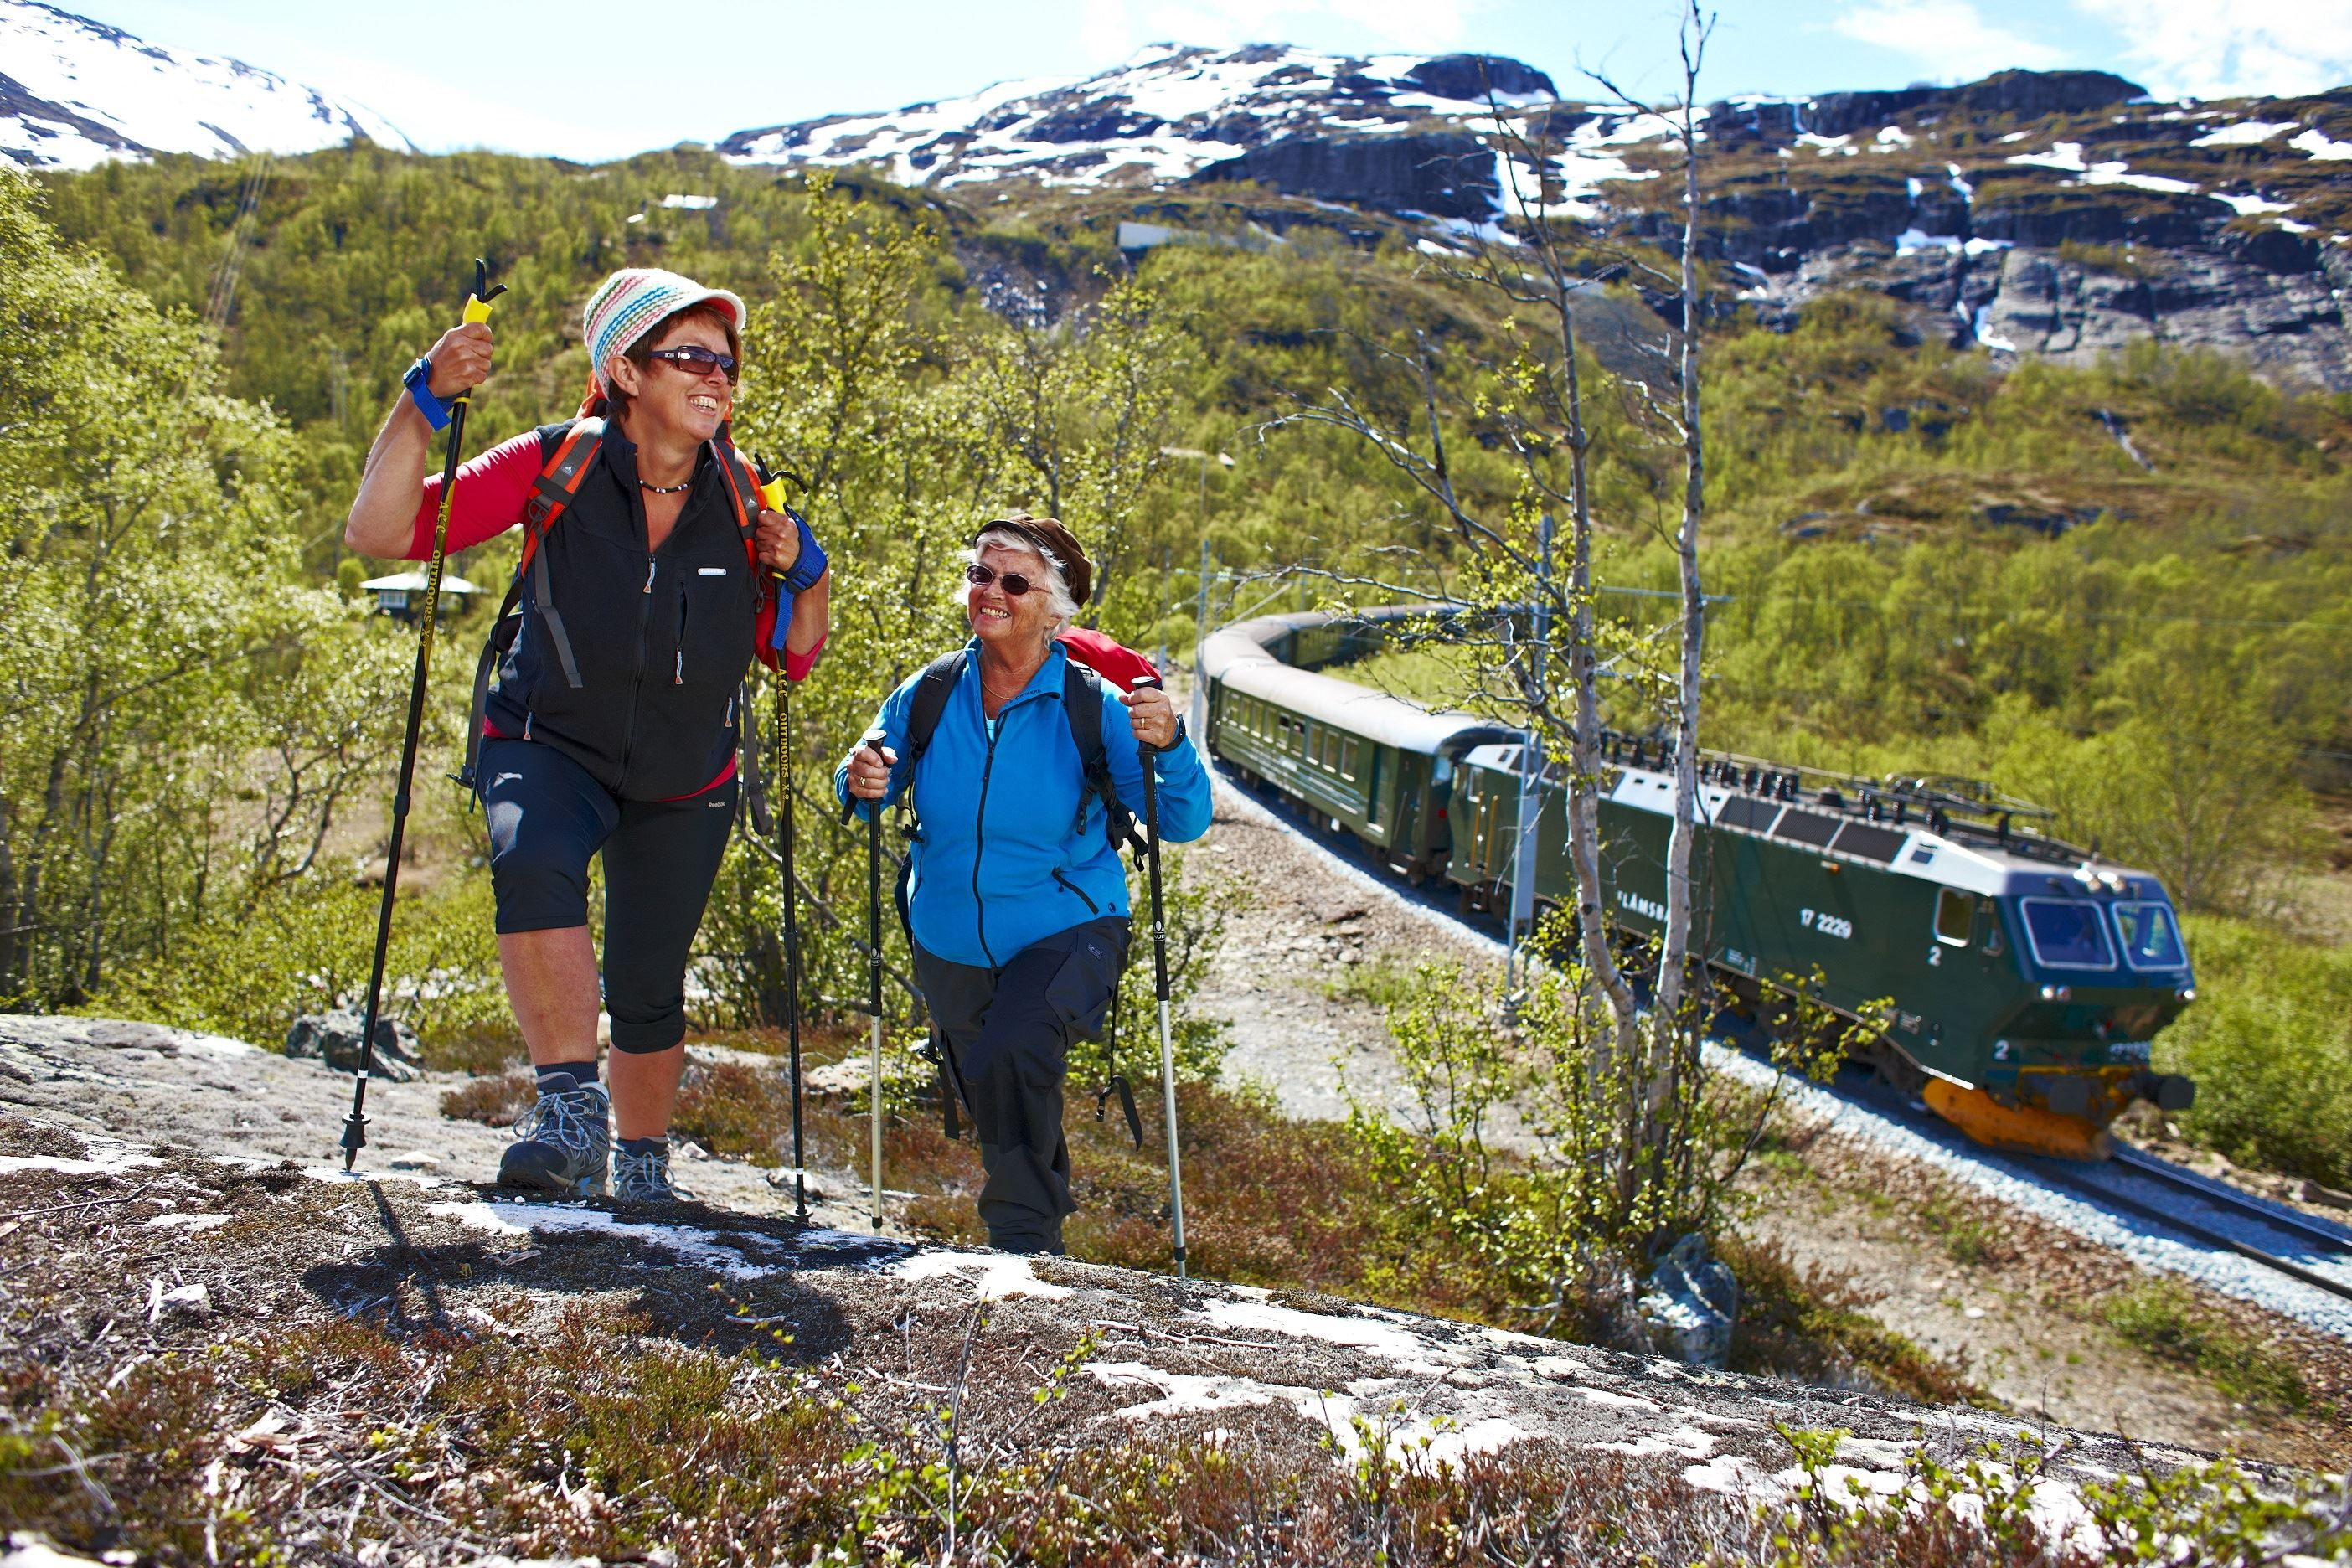 The Flåm Railway + hiking the Flåm valley